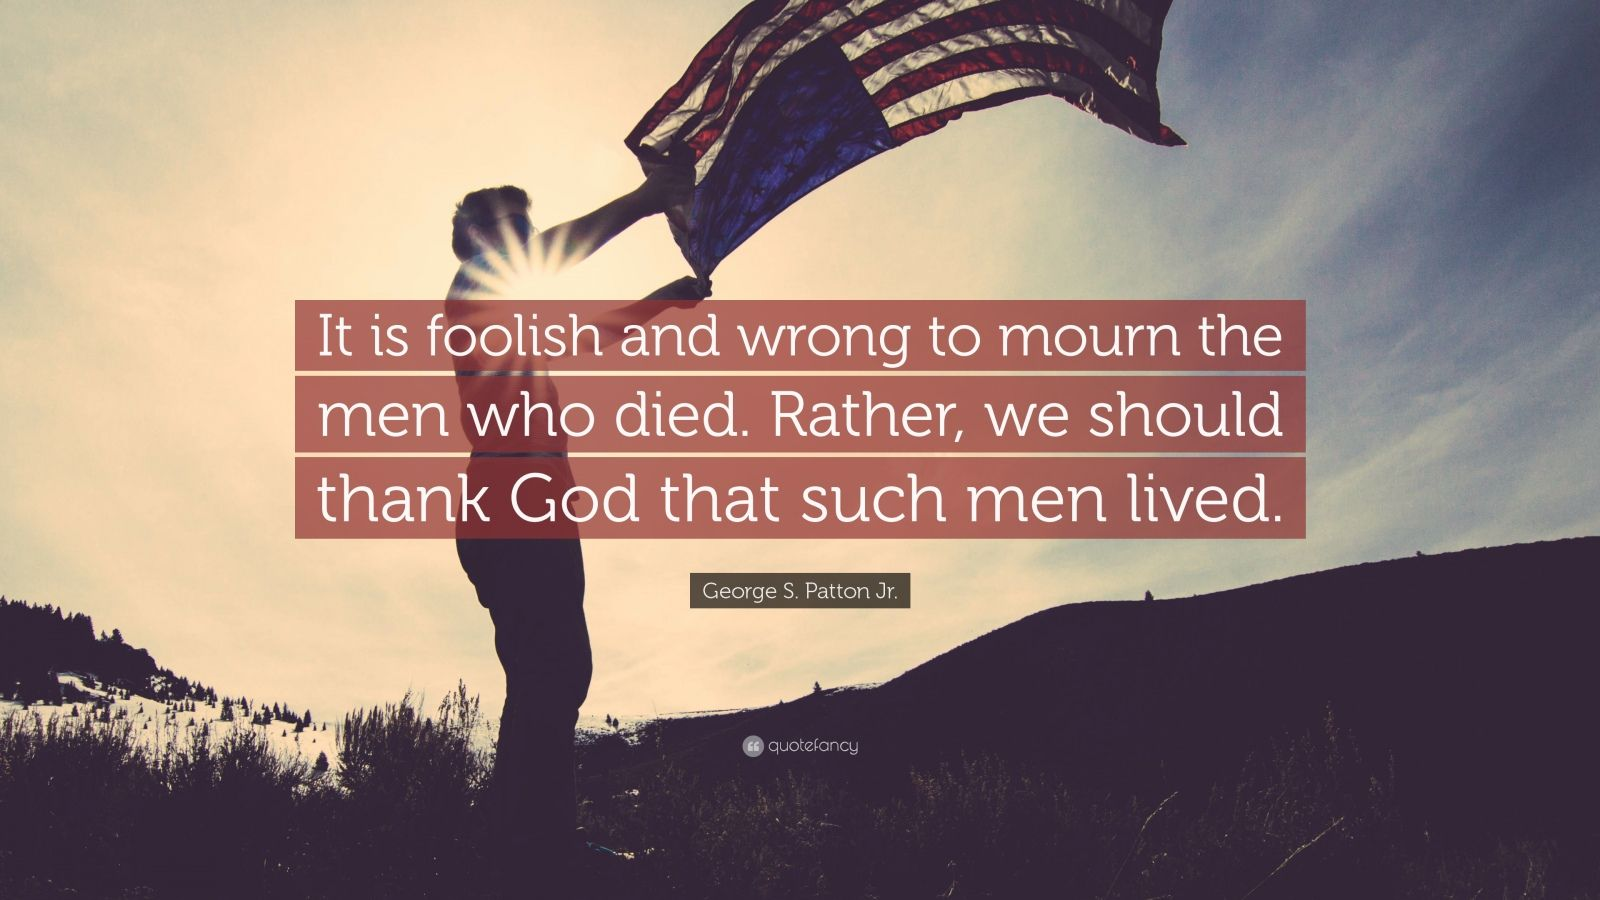 """George S. Patton Jr. Quote: """"It is foolish and wrong to mourn the men who died. Rather, we should thank God that such men lived."""""""